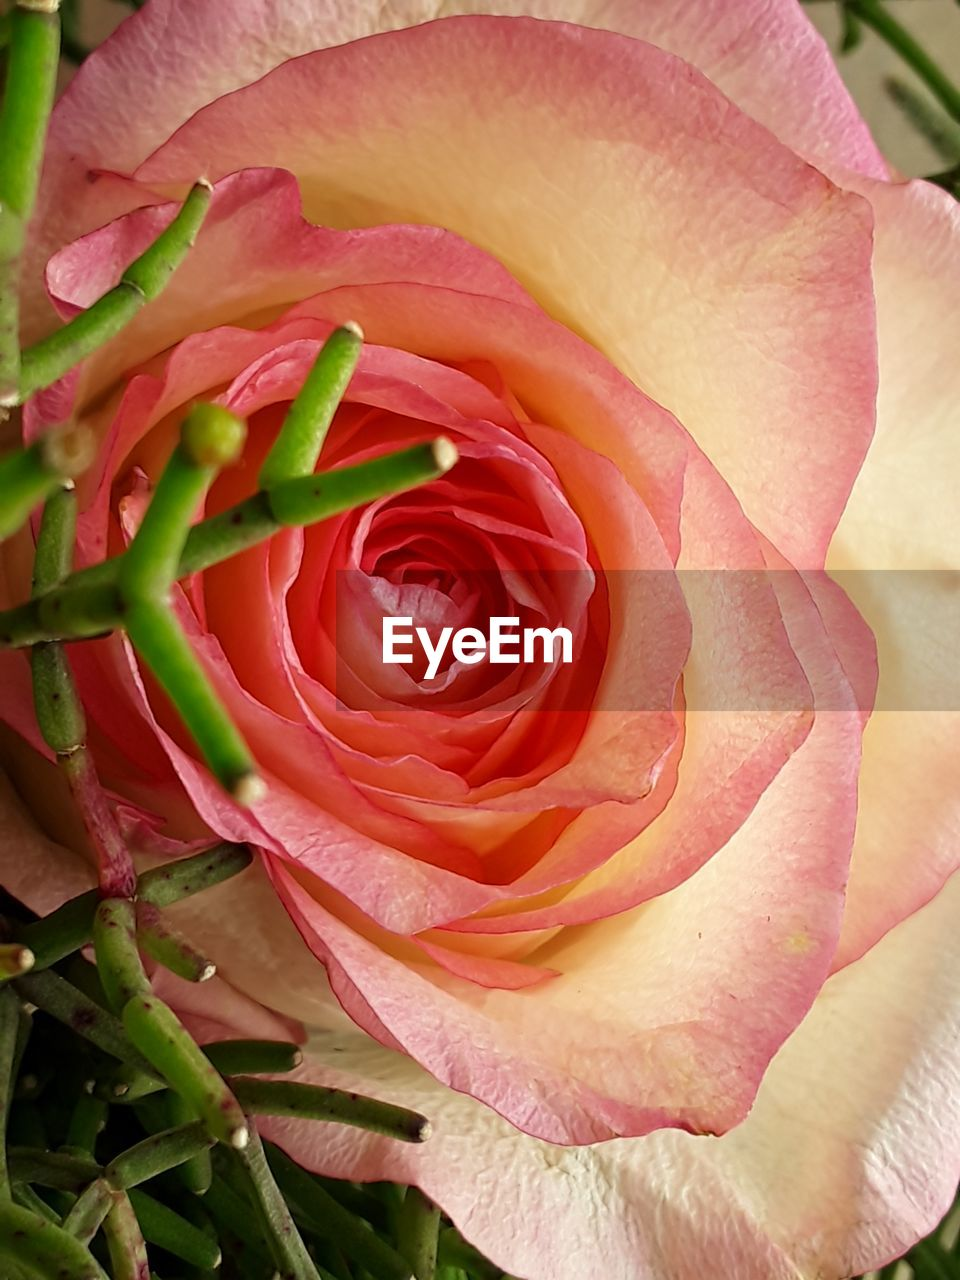 flower, nature, petal, growth, rose - flower, flower head, fragility, beauty in nature, freshness, close-up, plant, pink color, no people, outdoors, pattern, full frame, backgrounds, day, blooming